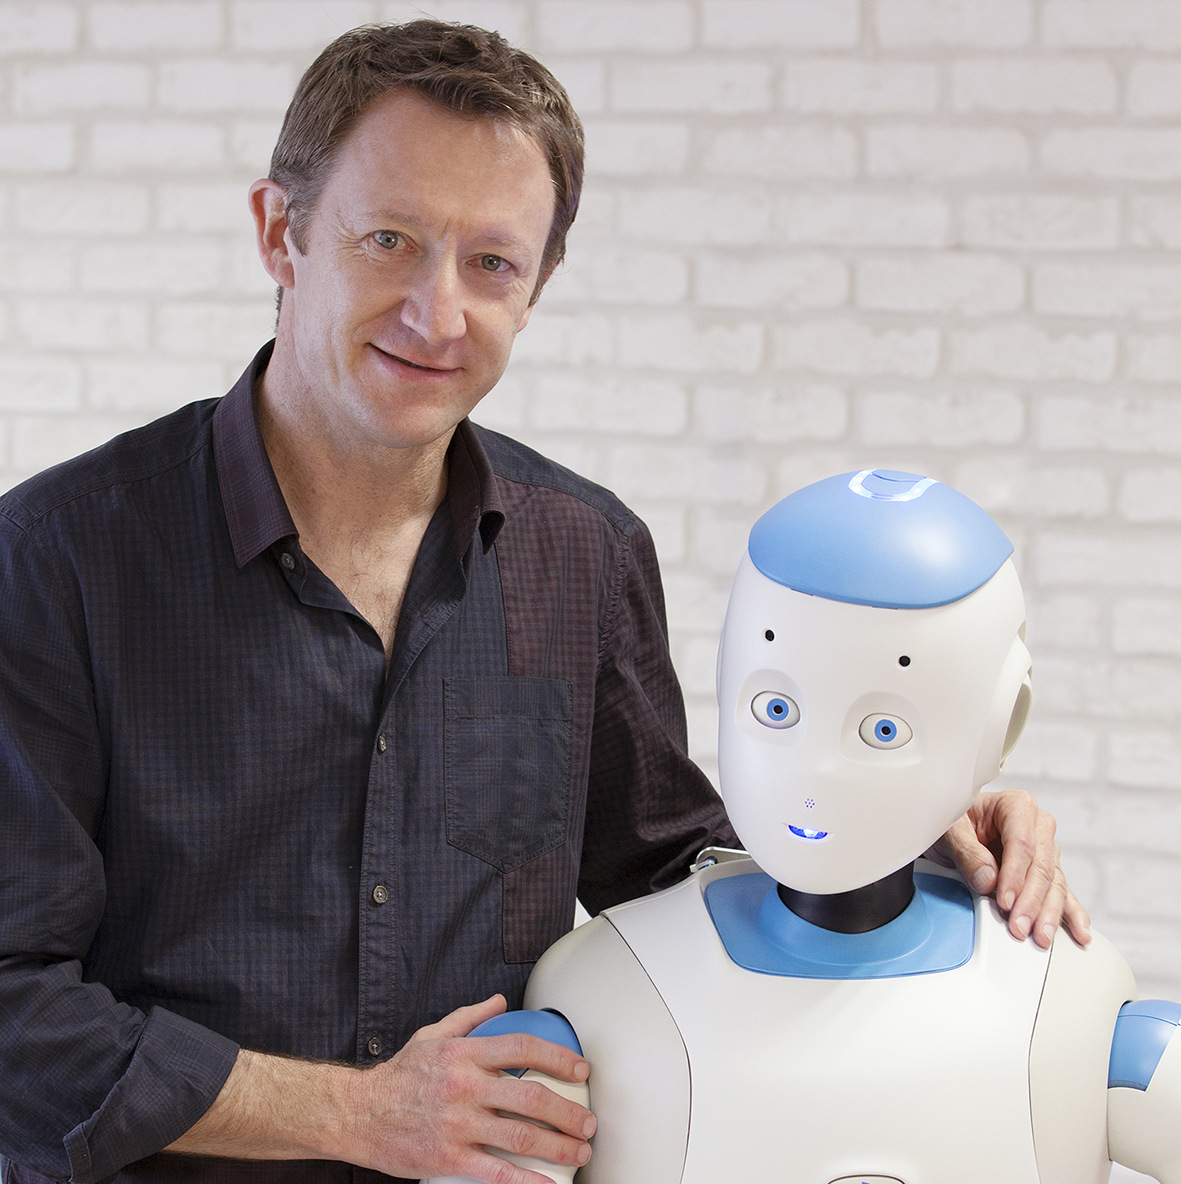 Image of Rodolphe Gelin and ROMEO Robot